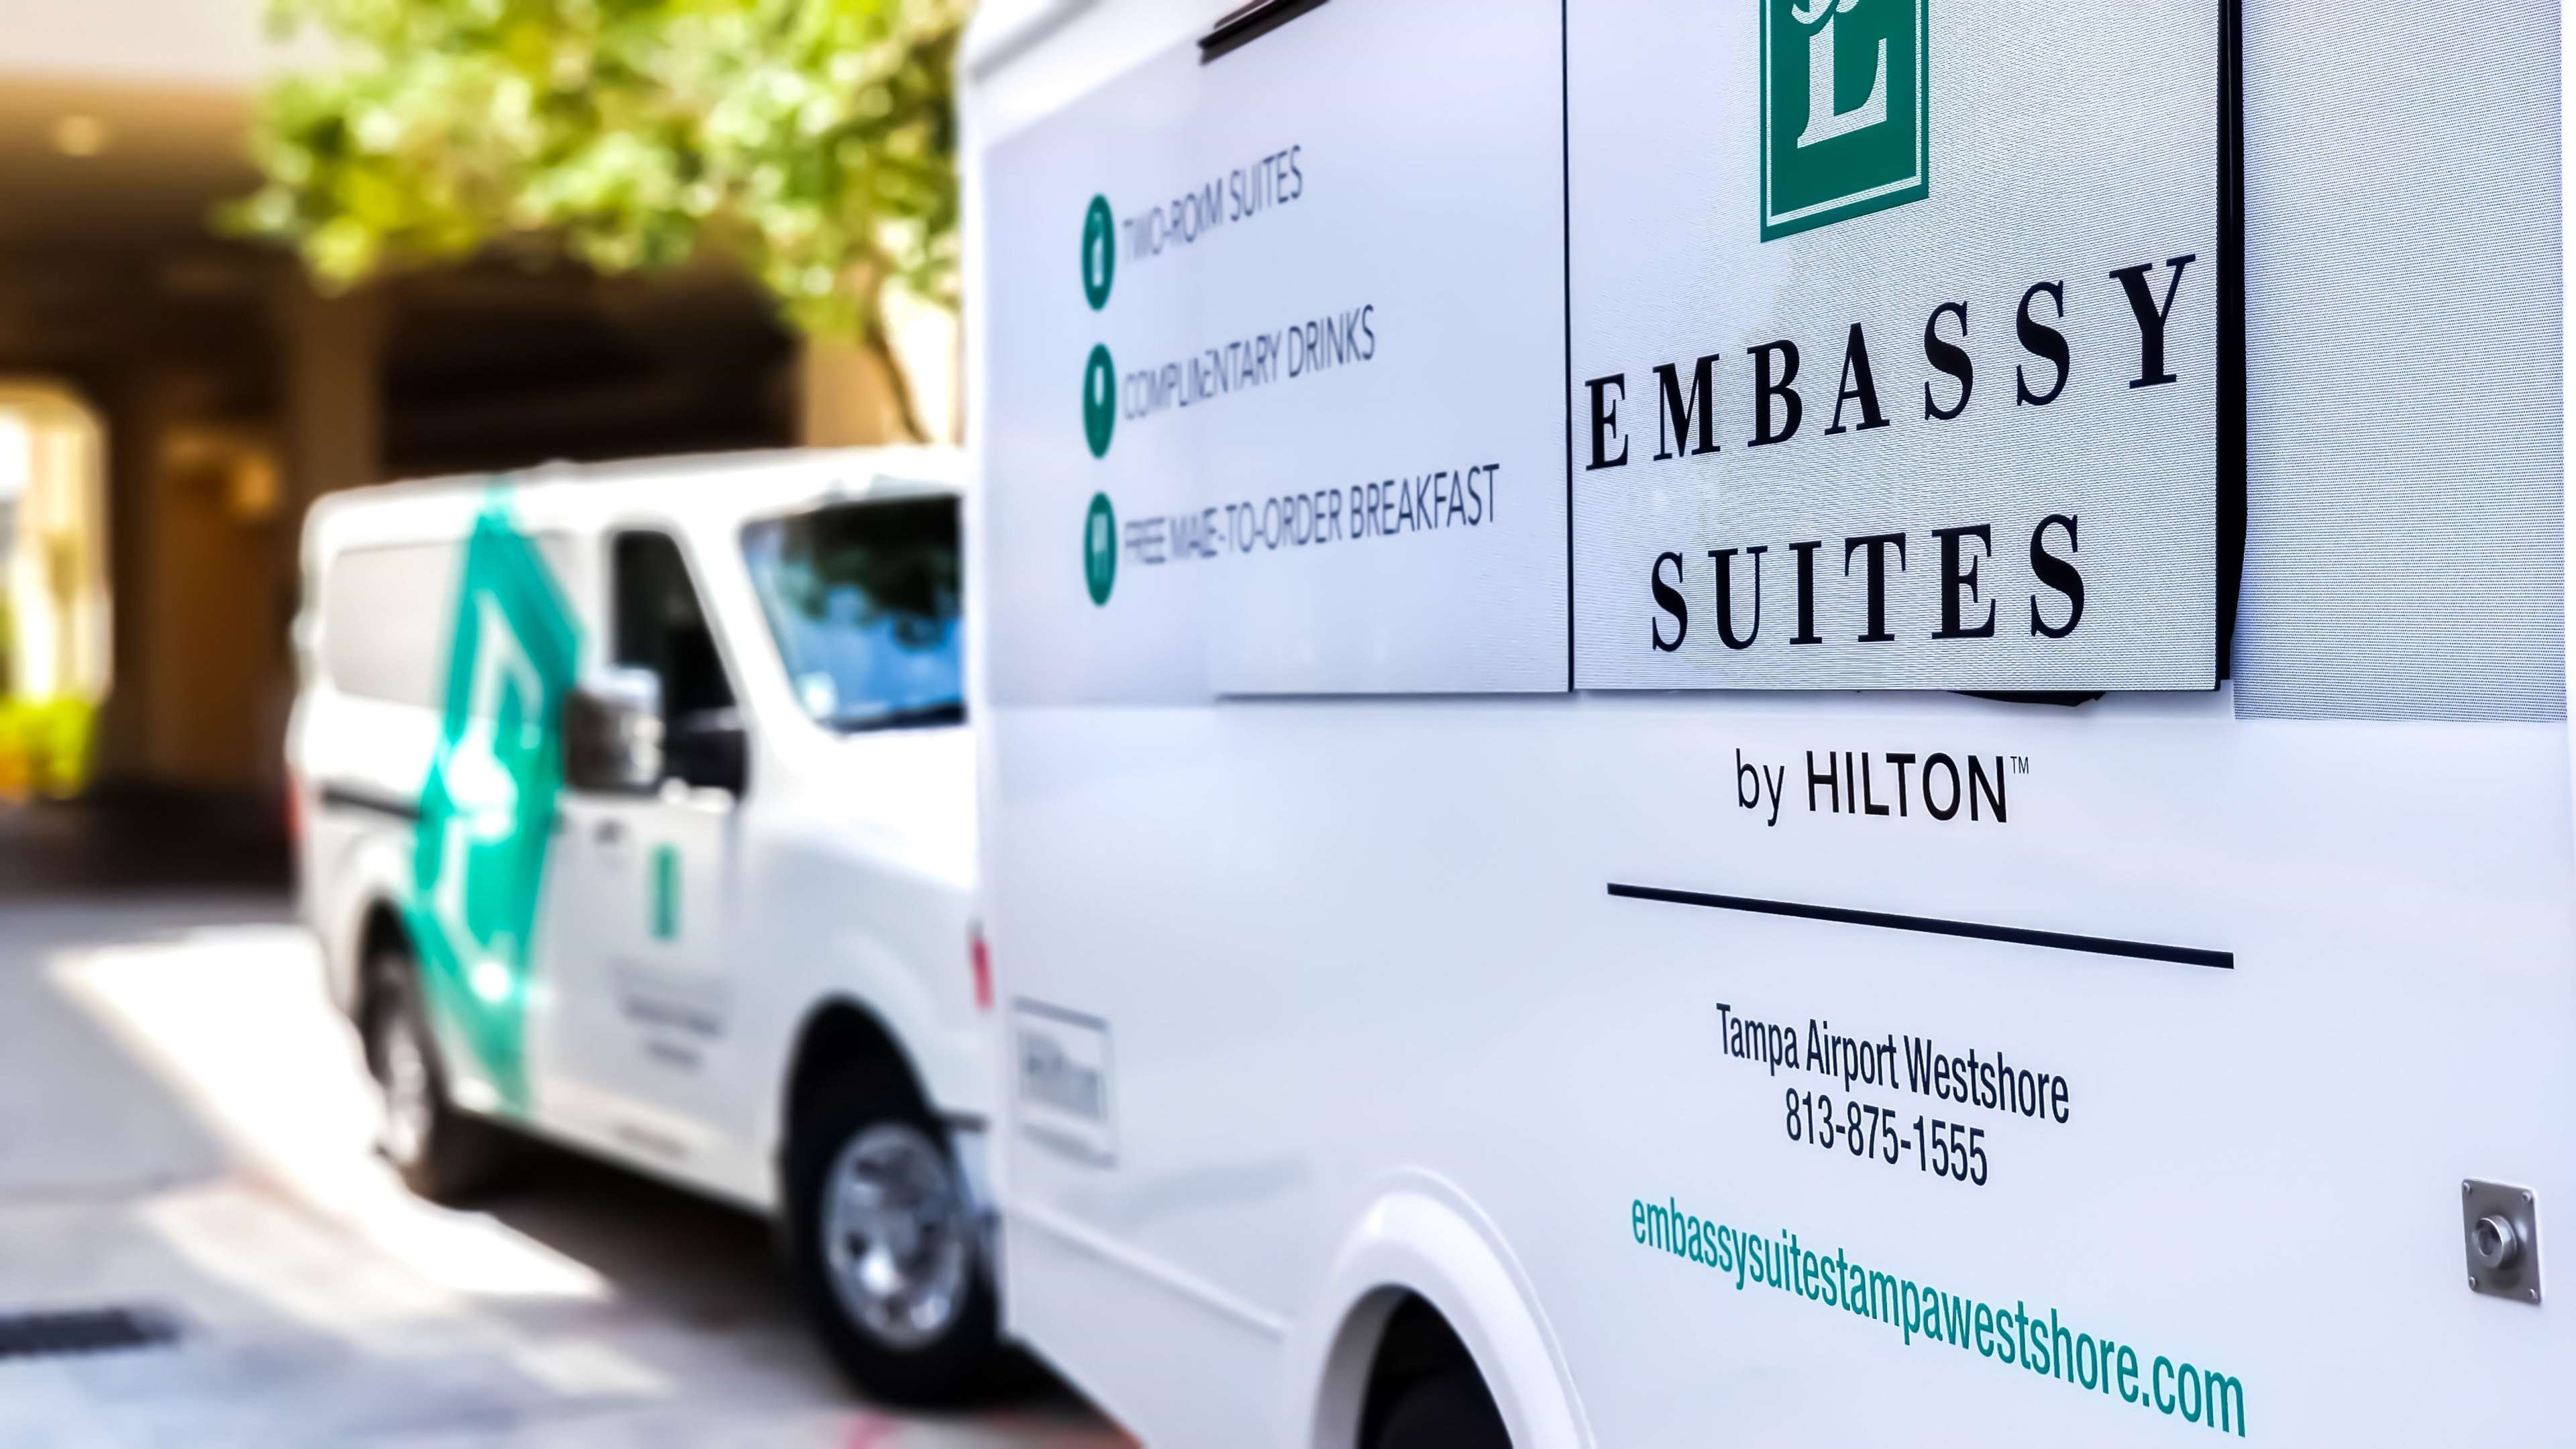 Embassy Suites by Hilton Tampa Airport Westshore image 1